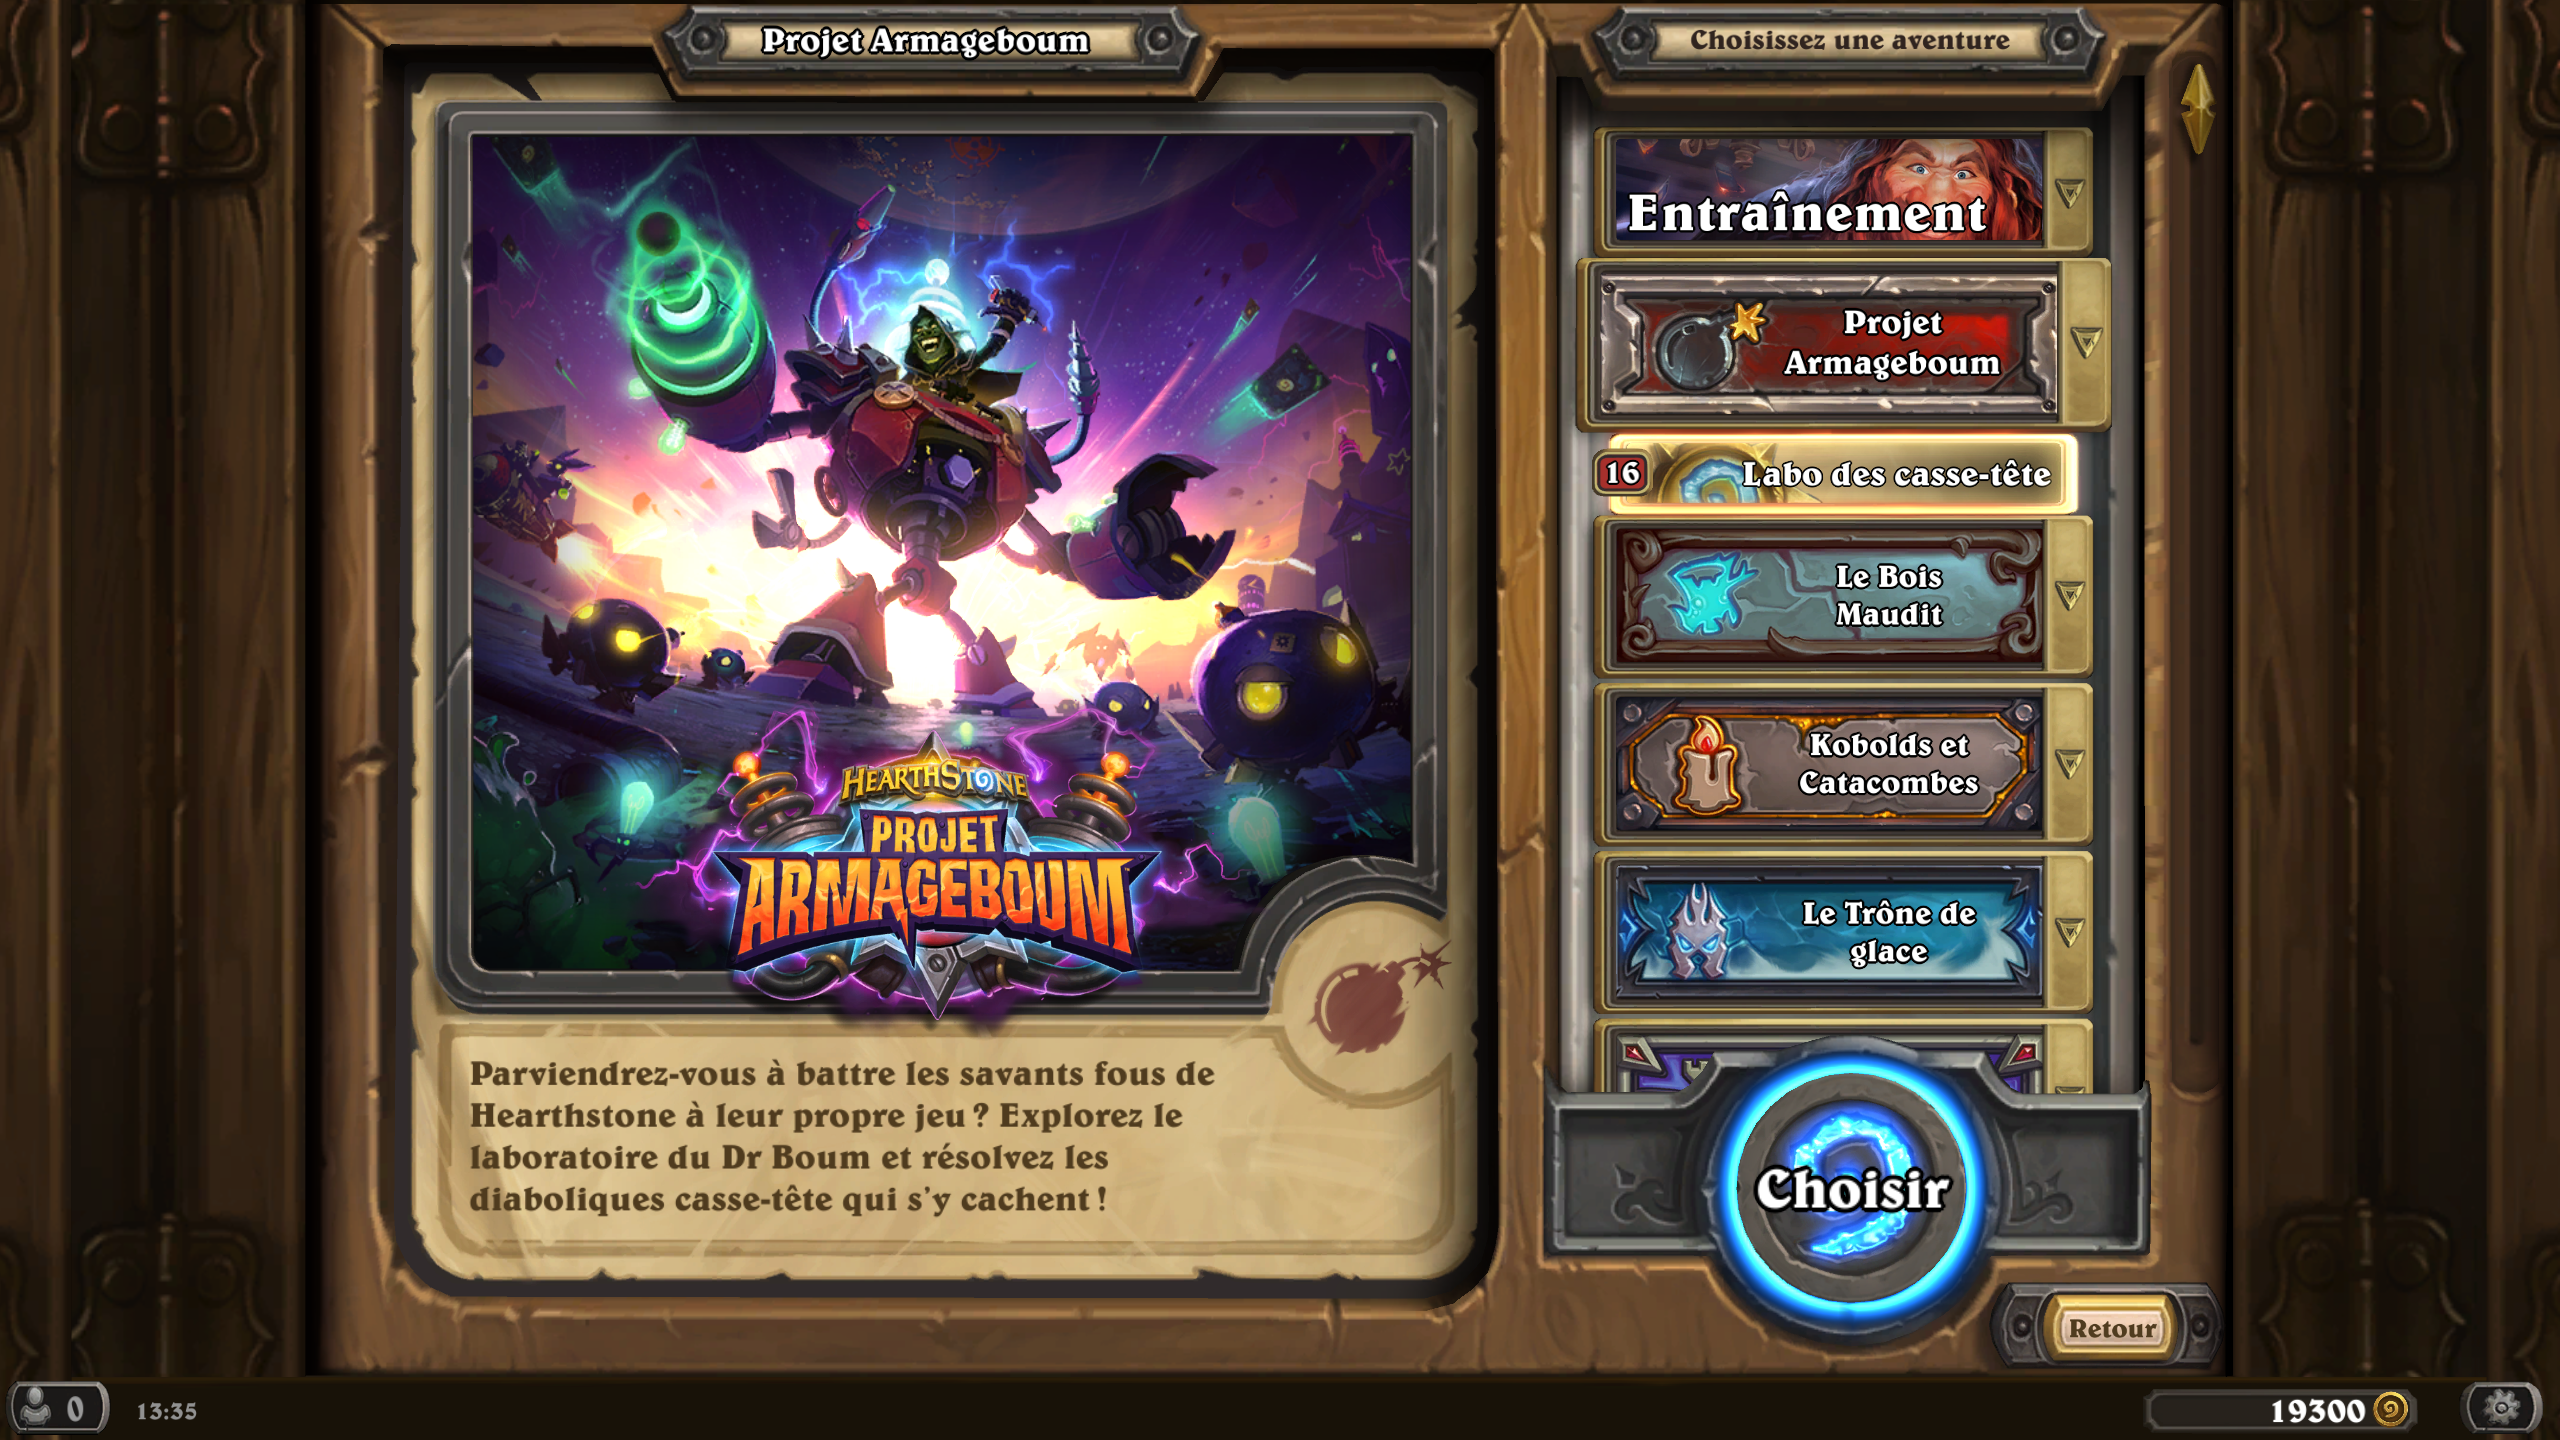 Blizzard Press Center - The Boomsday Project Announcement Kit